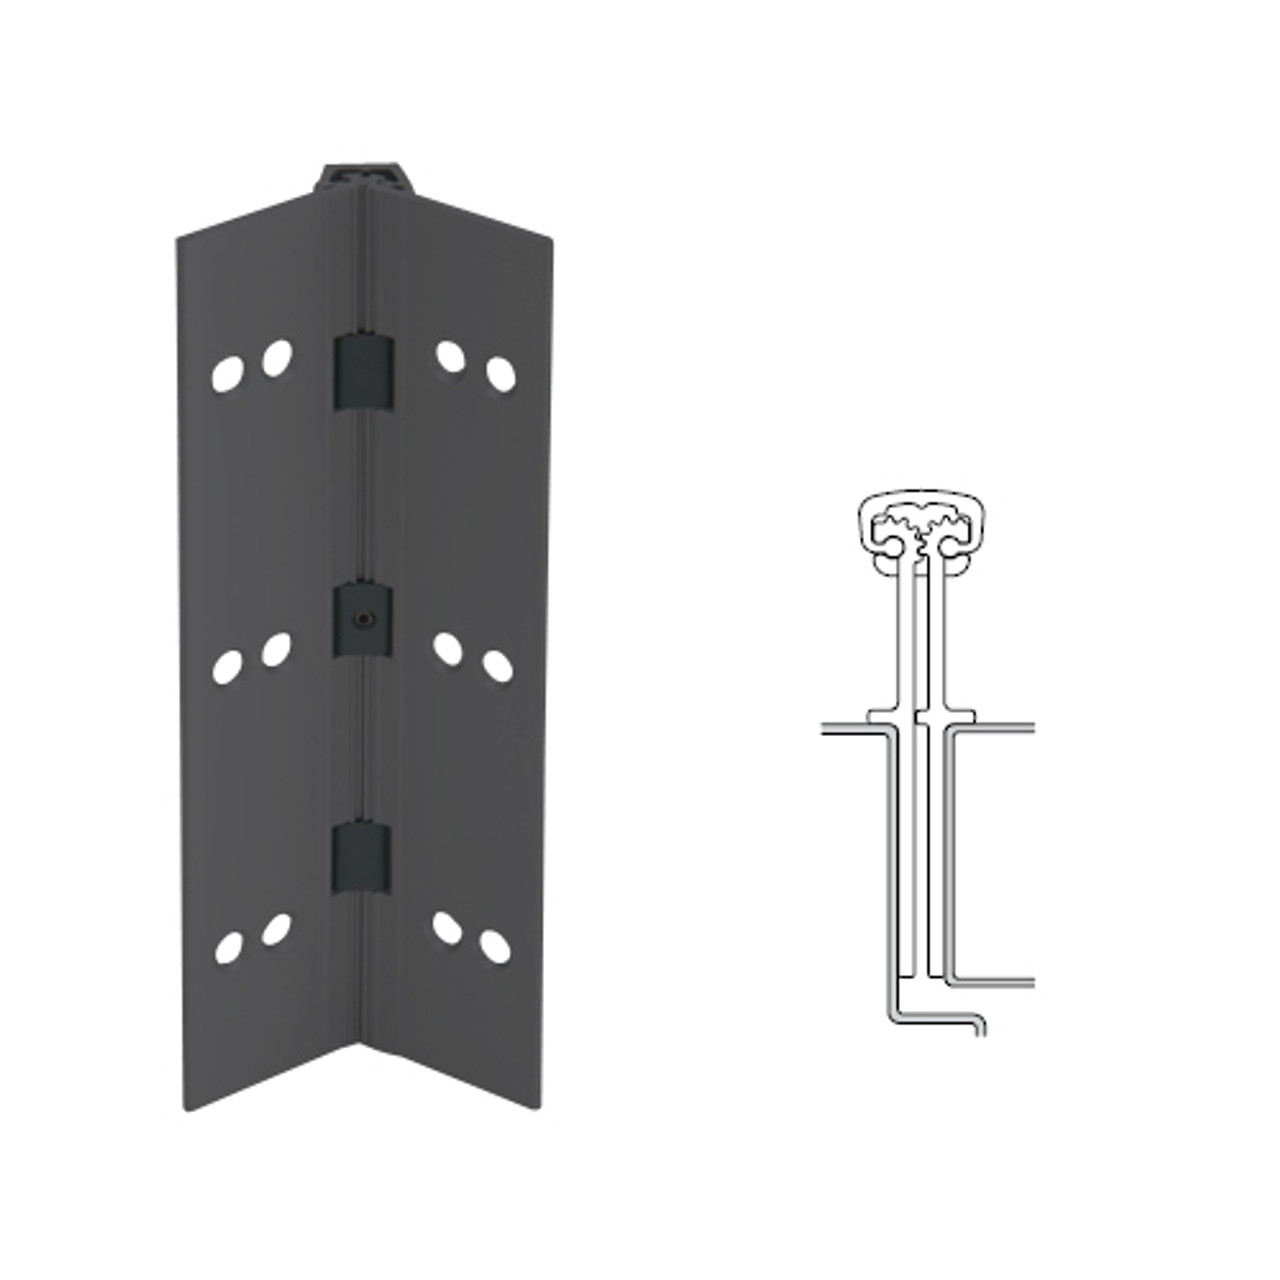 040XY-315AN-95-HT IVES Full Mortise Continuous Geared Hinges with Hospital Tip in Anodized Black